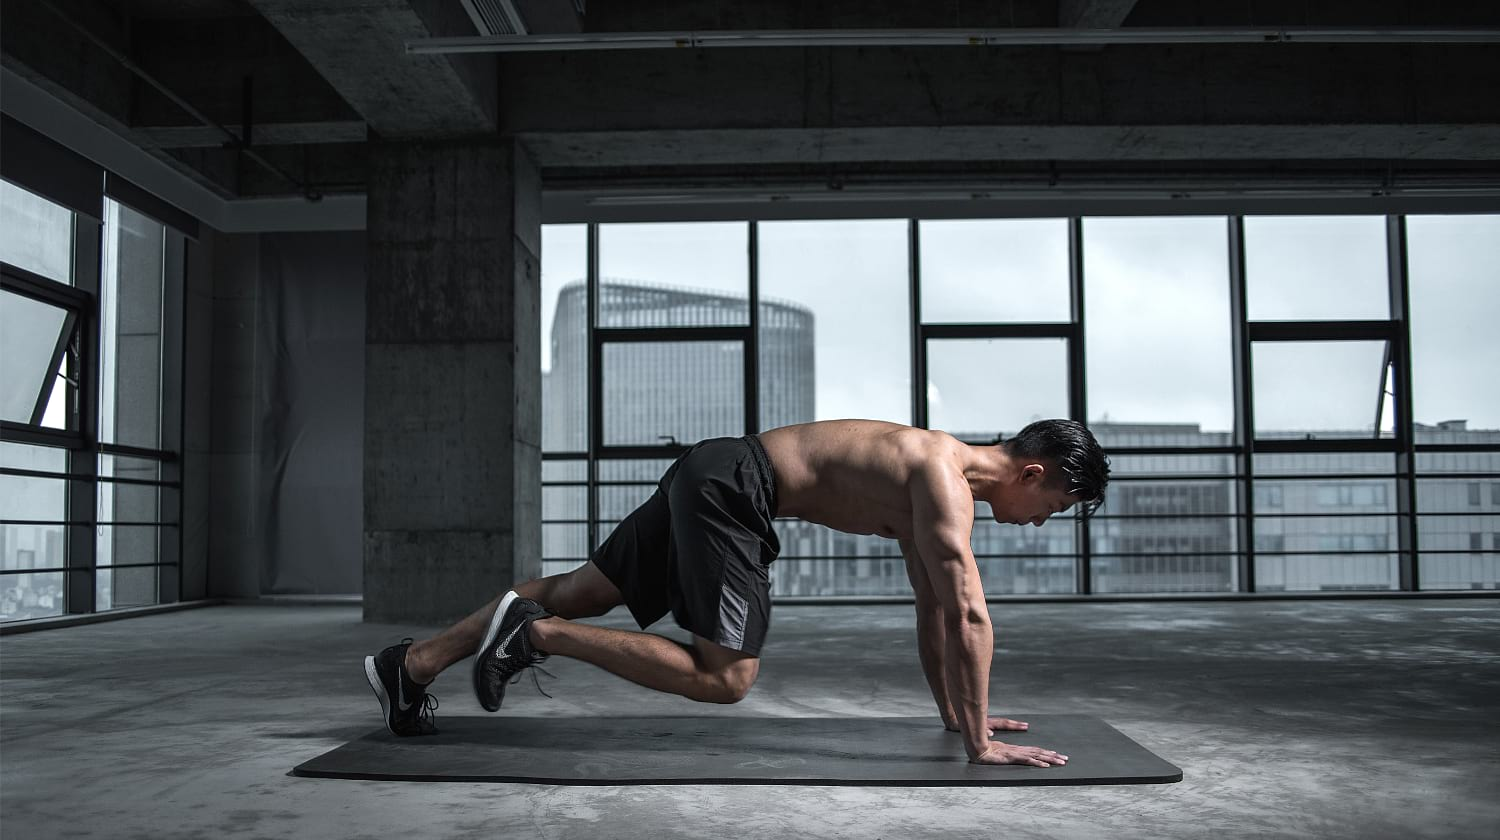 man working out alone | Nootropics: Benefits And Why Athletes Are Adding Them To Their Stack | featured